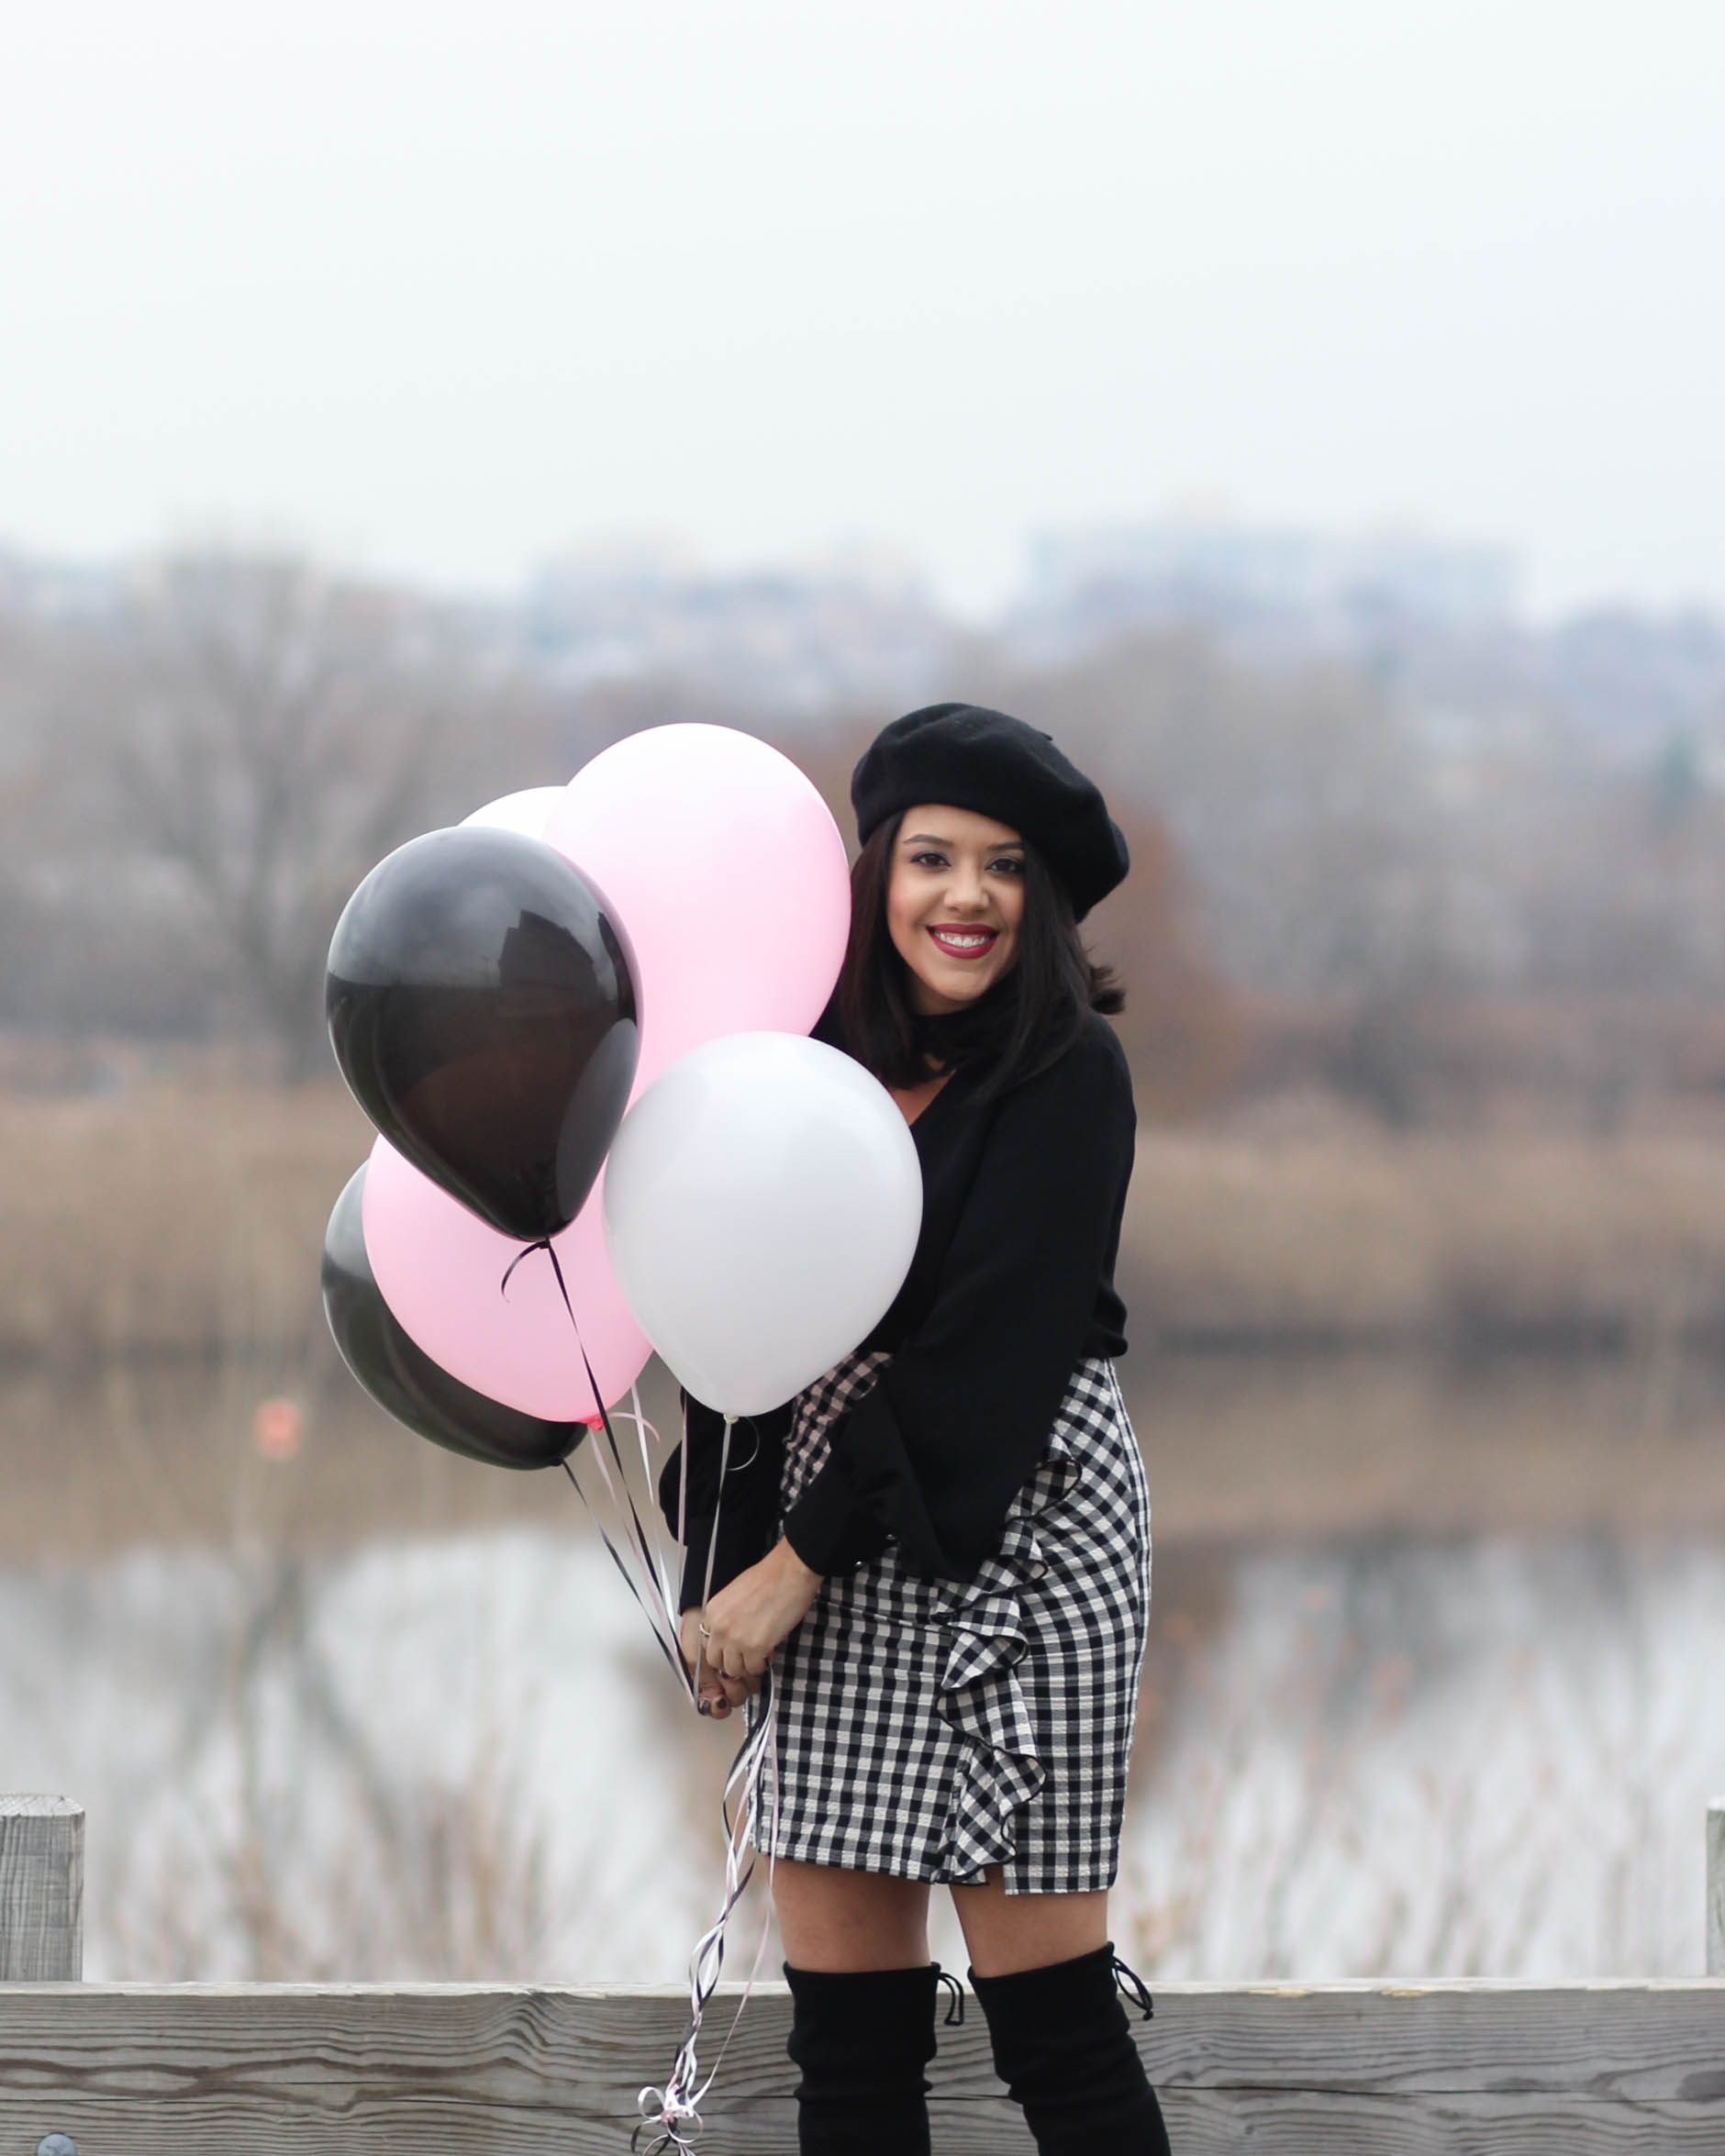 lifestyle blogger naty michele wearing beret and holding balloons